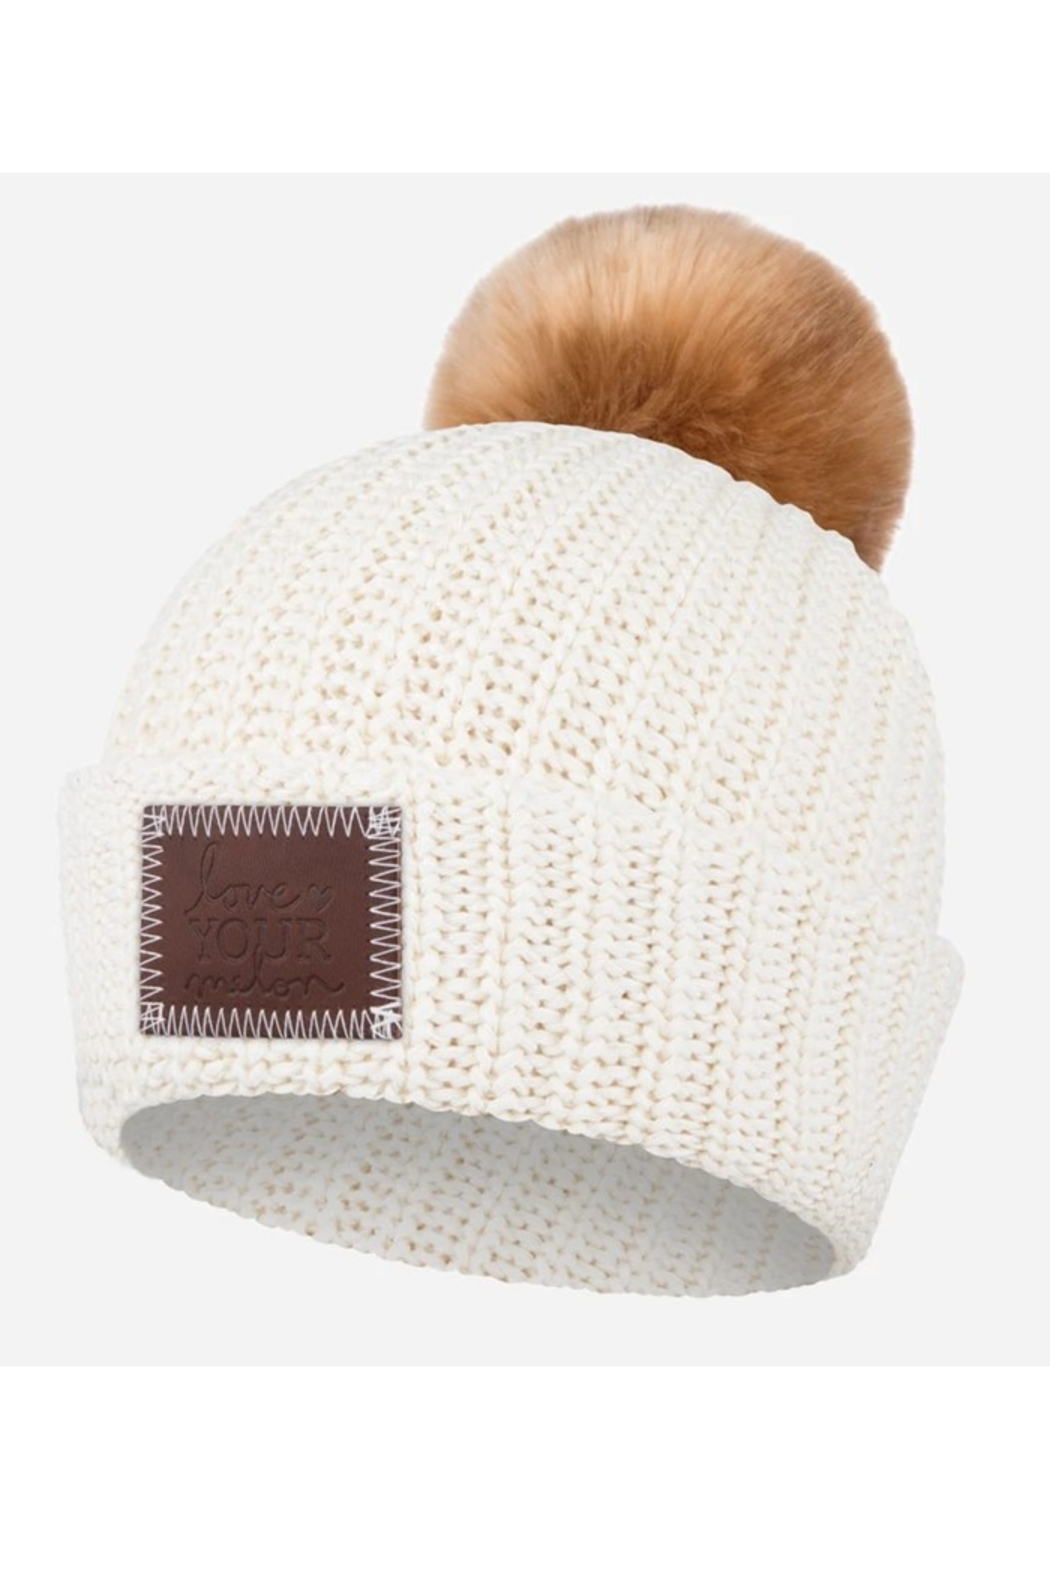 Love Your Melon White Speckled Pom Beanie - Main Image